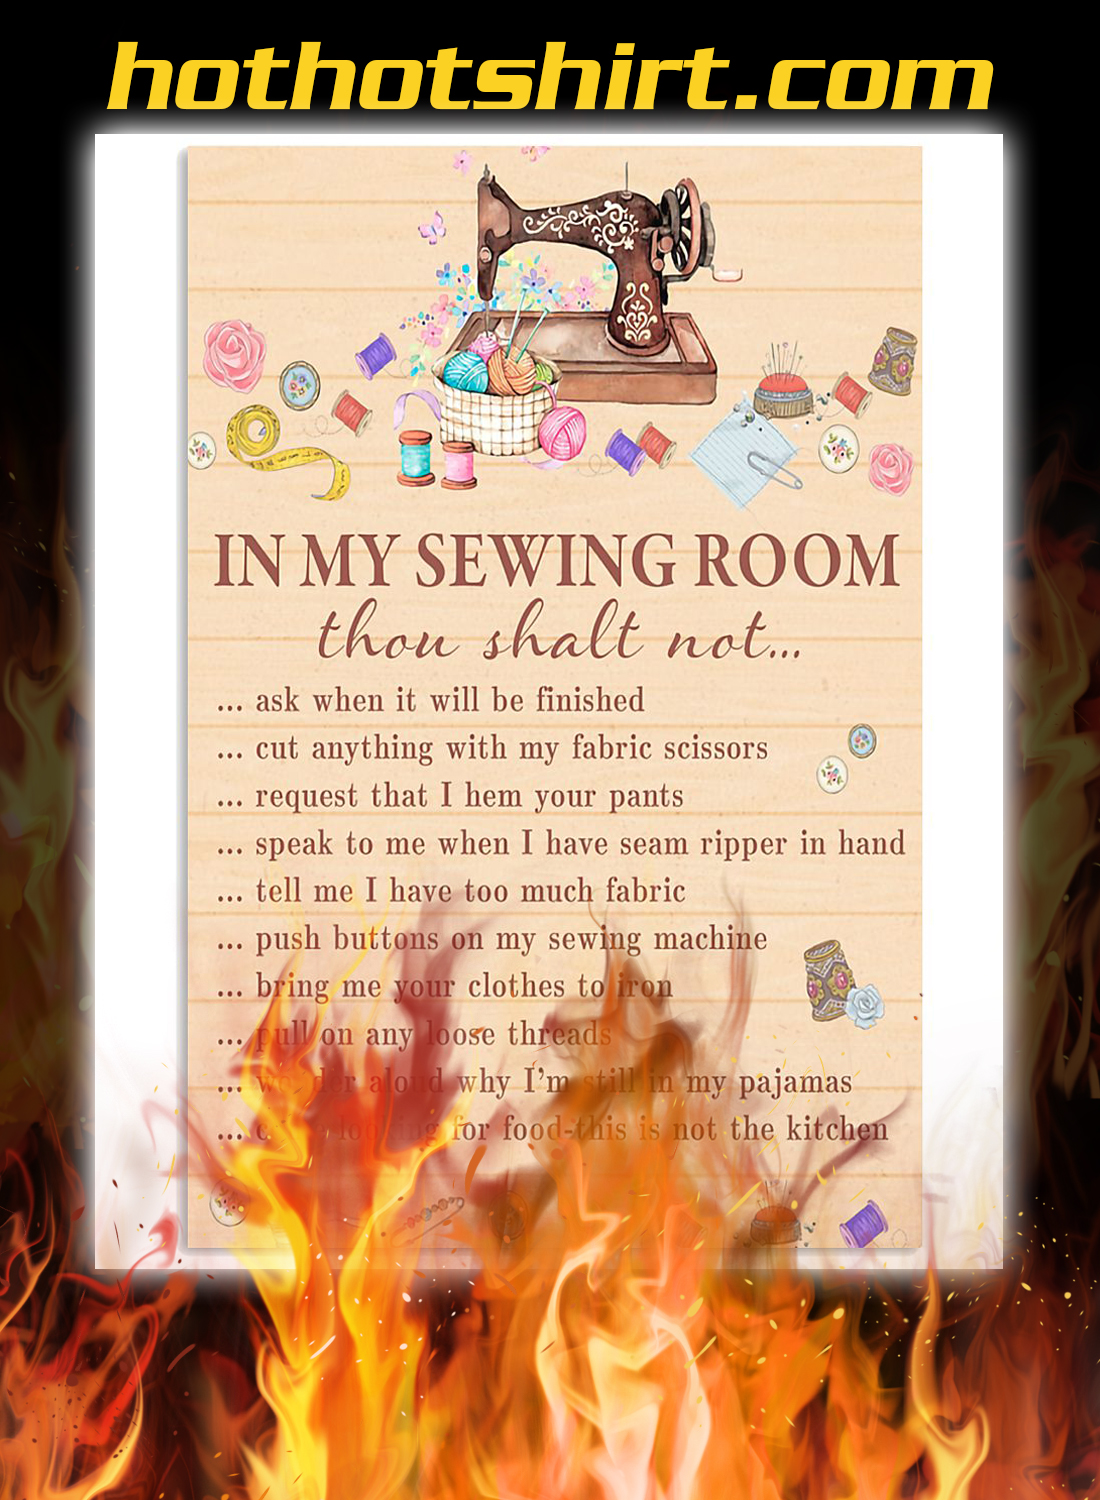 Sewing in the sewing room poster 3